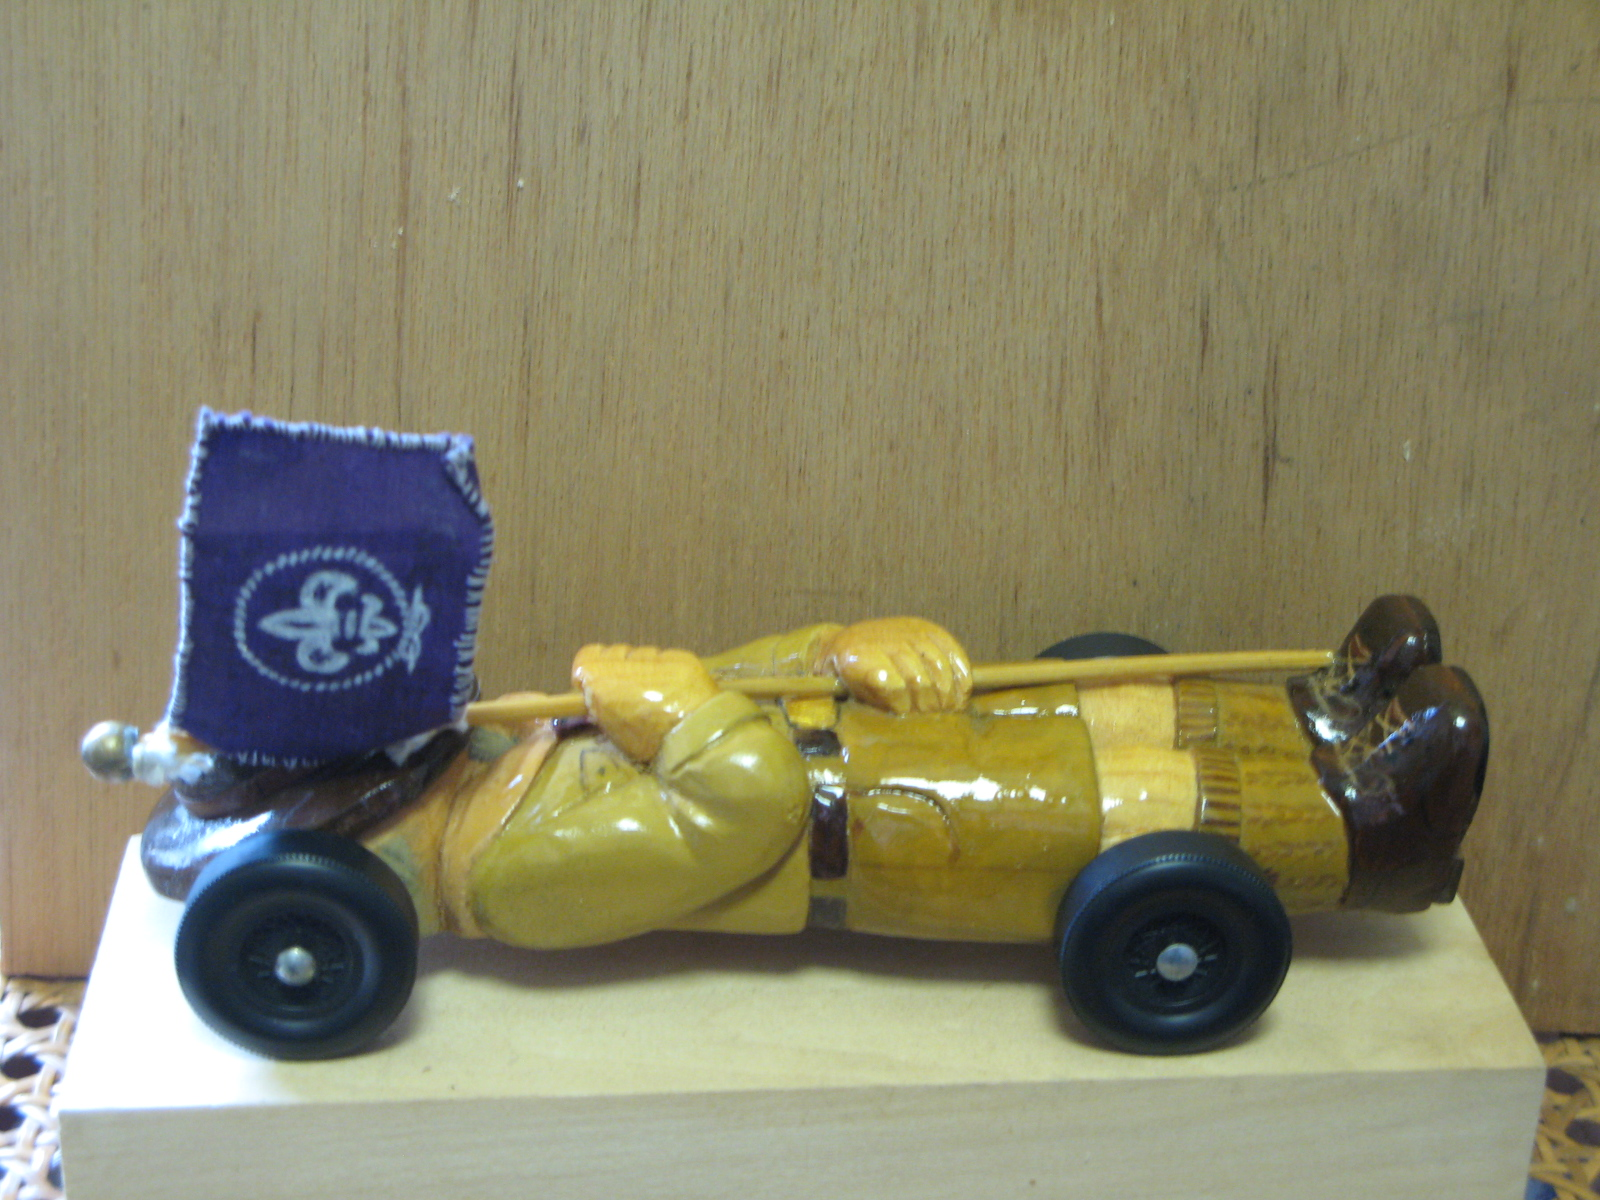 A Whittle Scouting: Still more Pinewood Derby cars